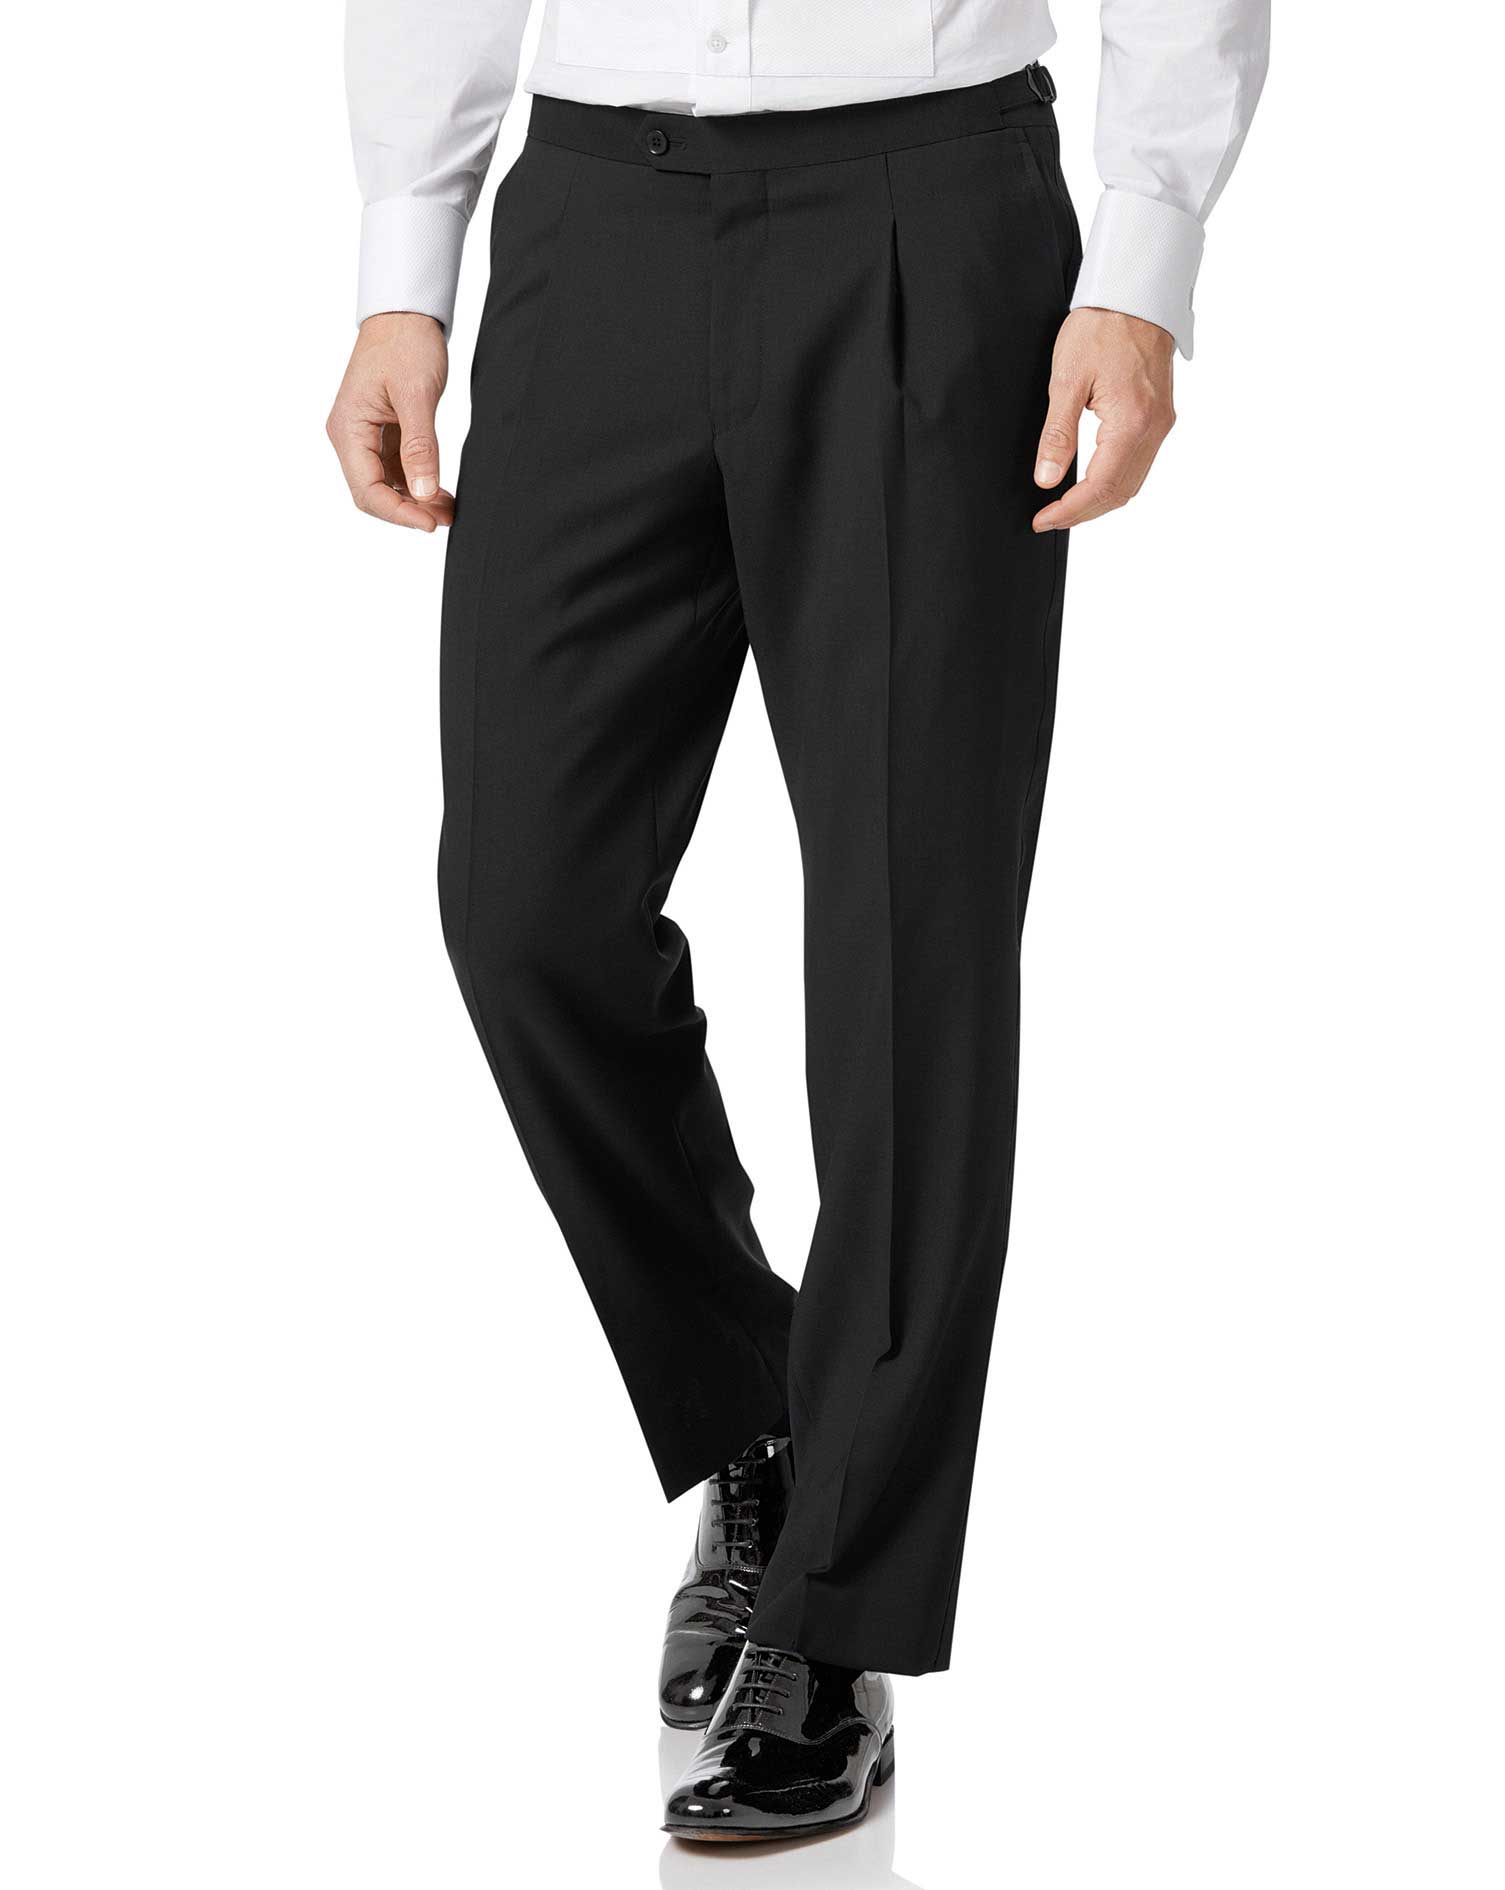 Black Classic Fit Tuxedo Trousers Size W34 L38 by Charles Tyrwhitt